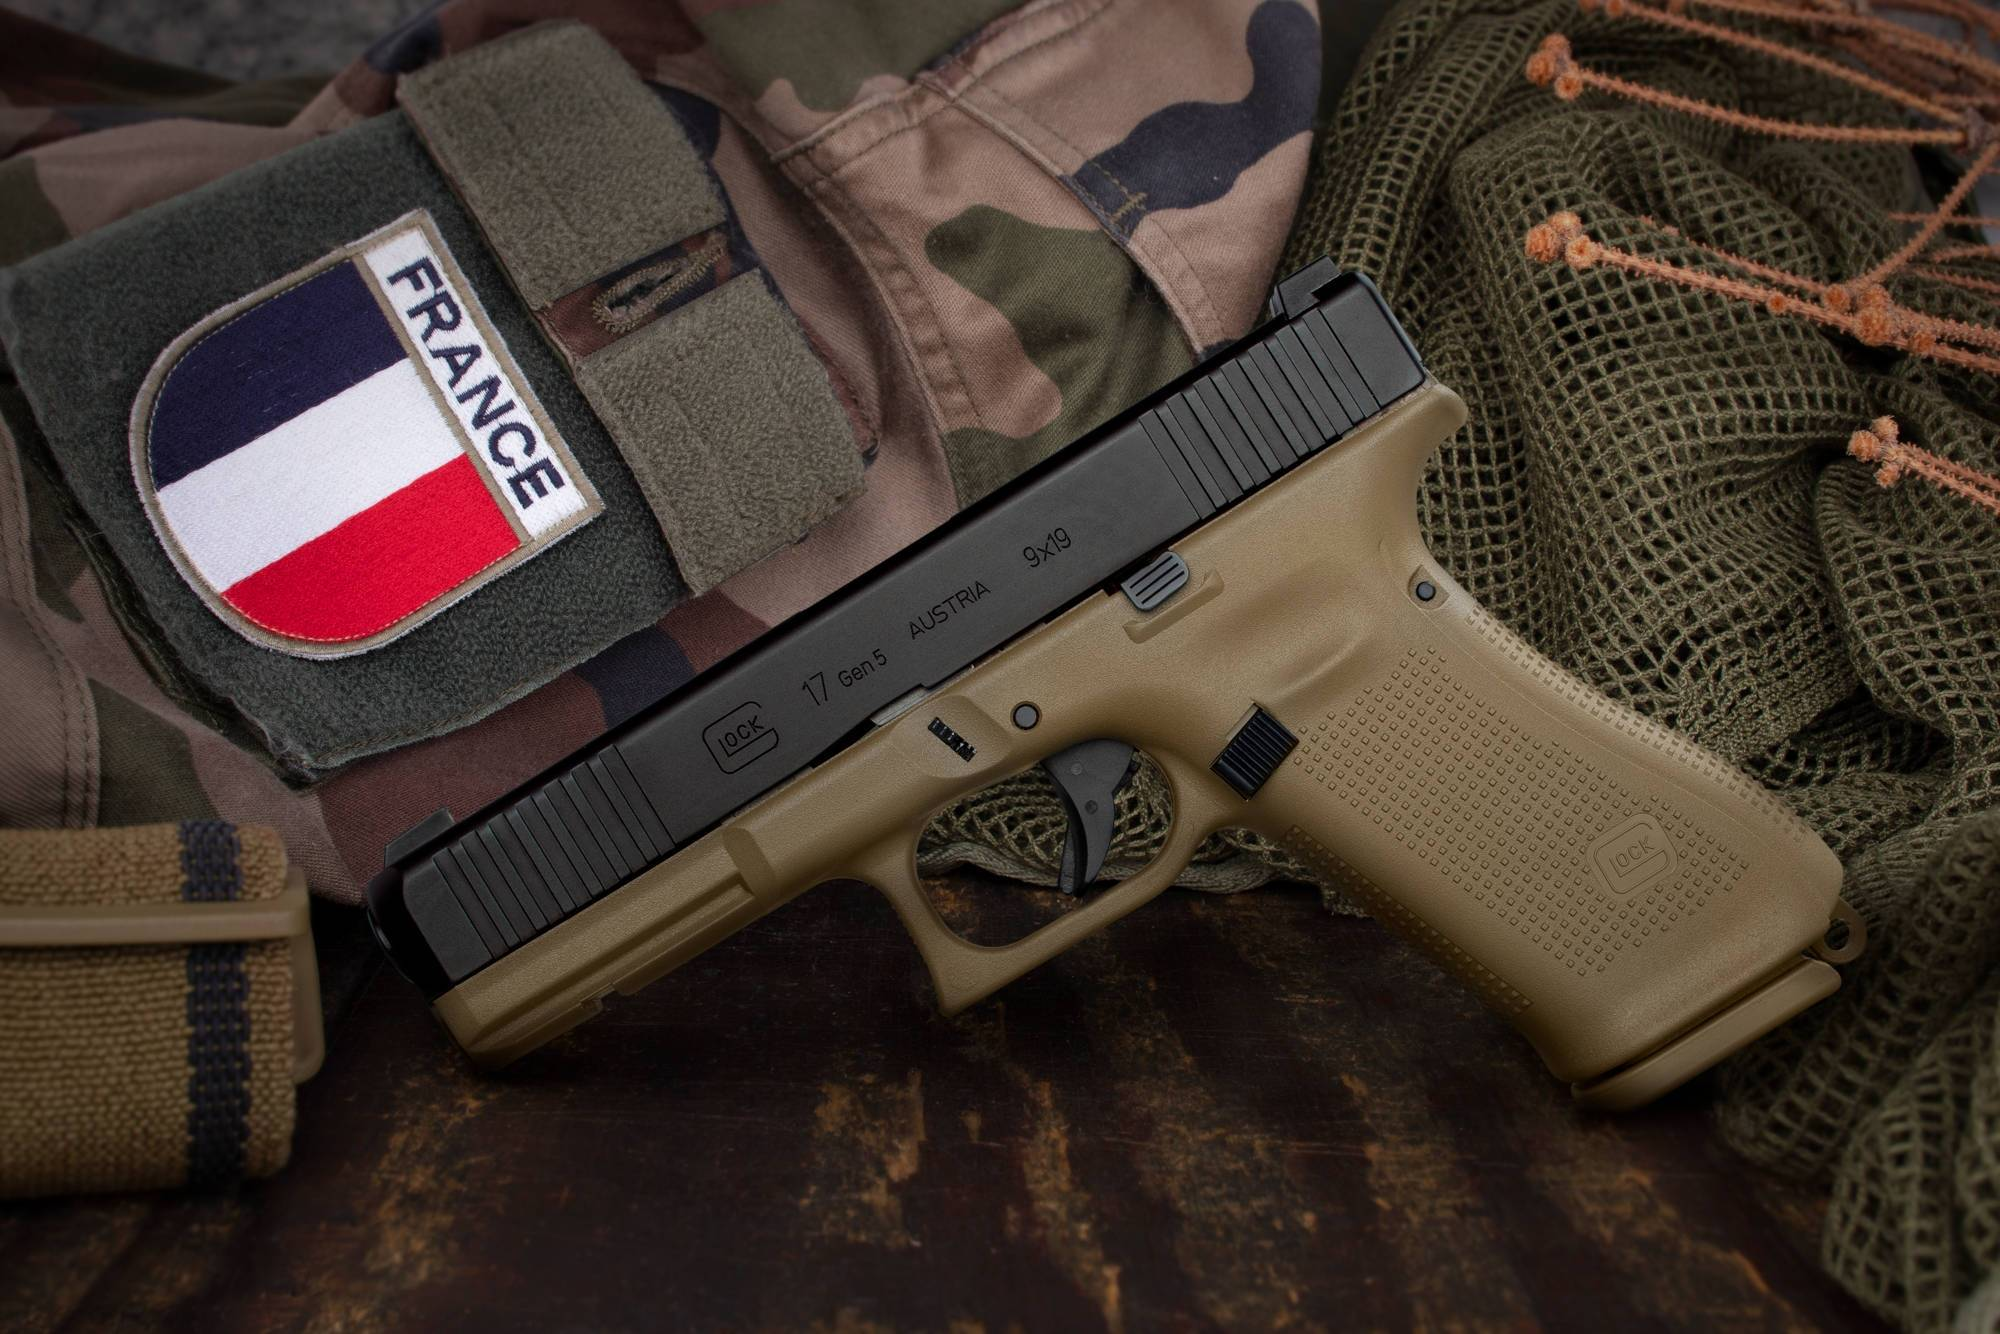 Gun review: glock 34 mos gen 5 fs 9mm - the truth about guns